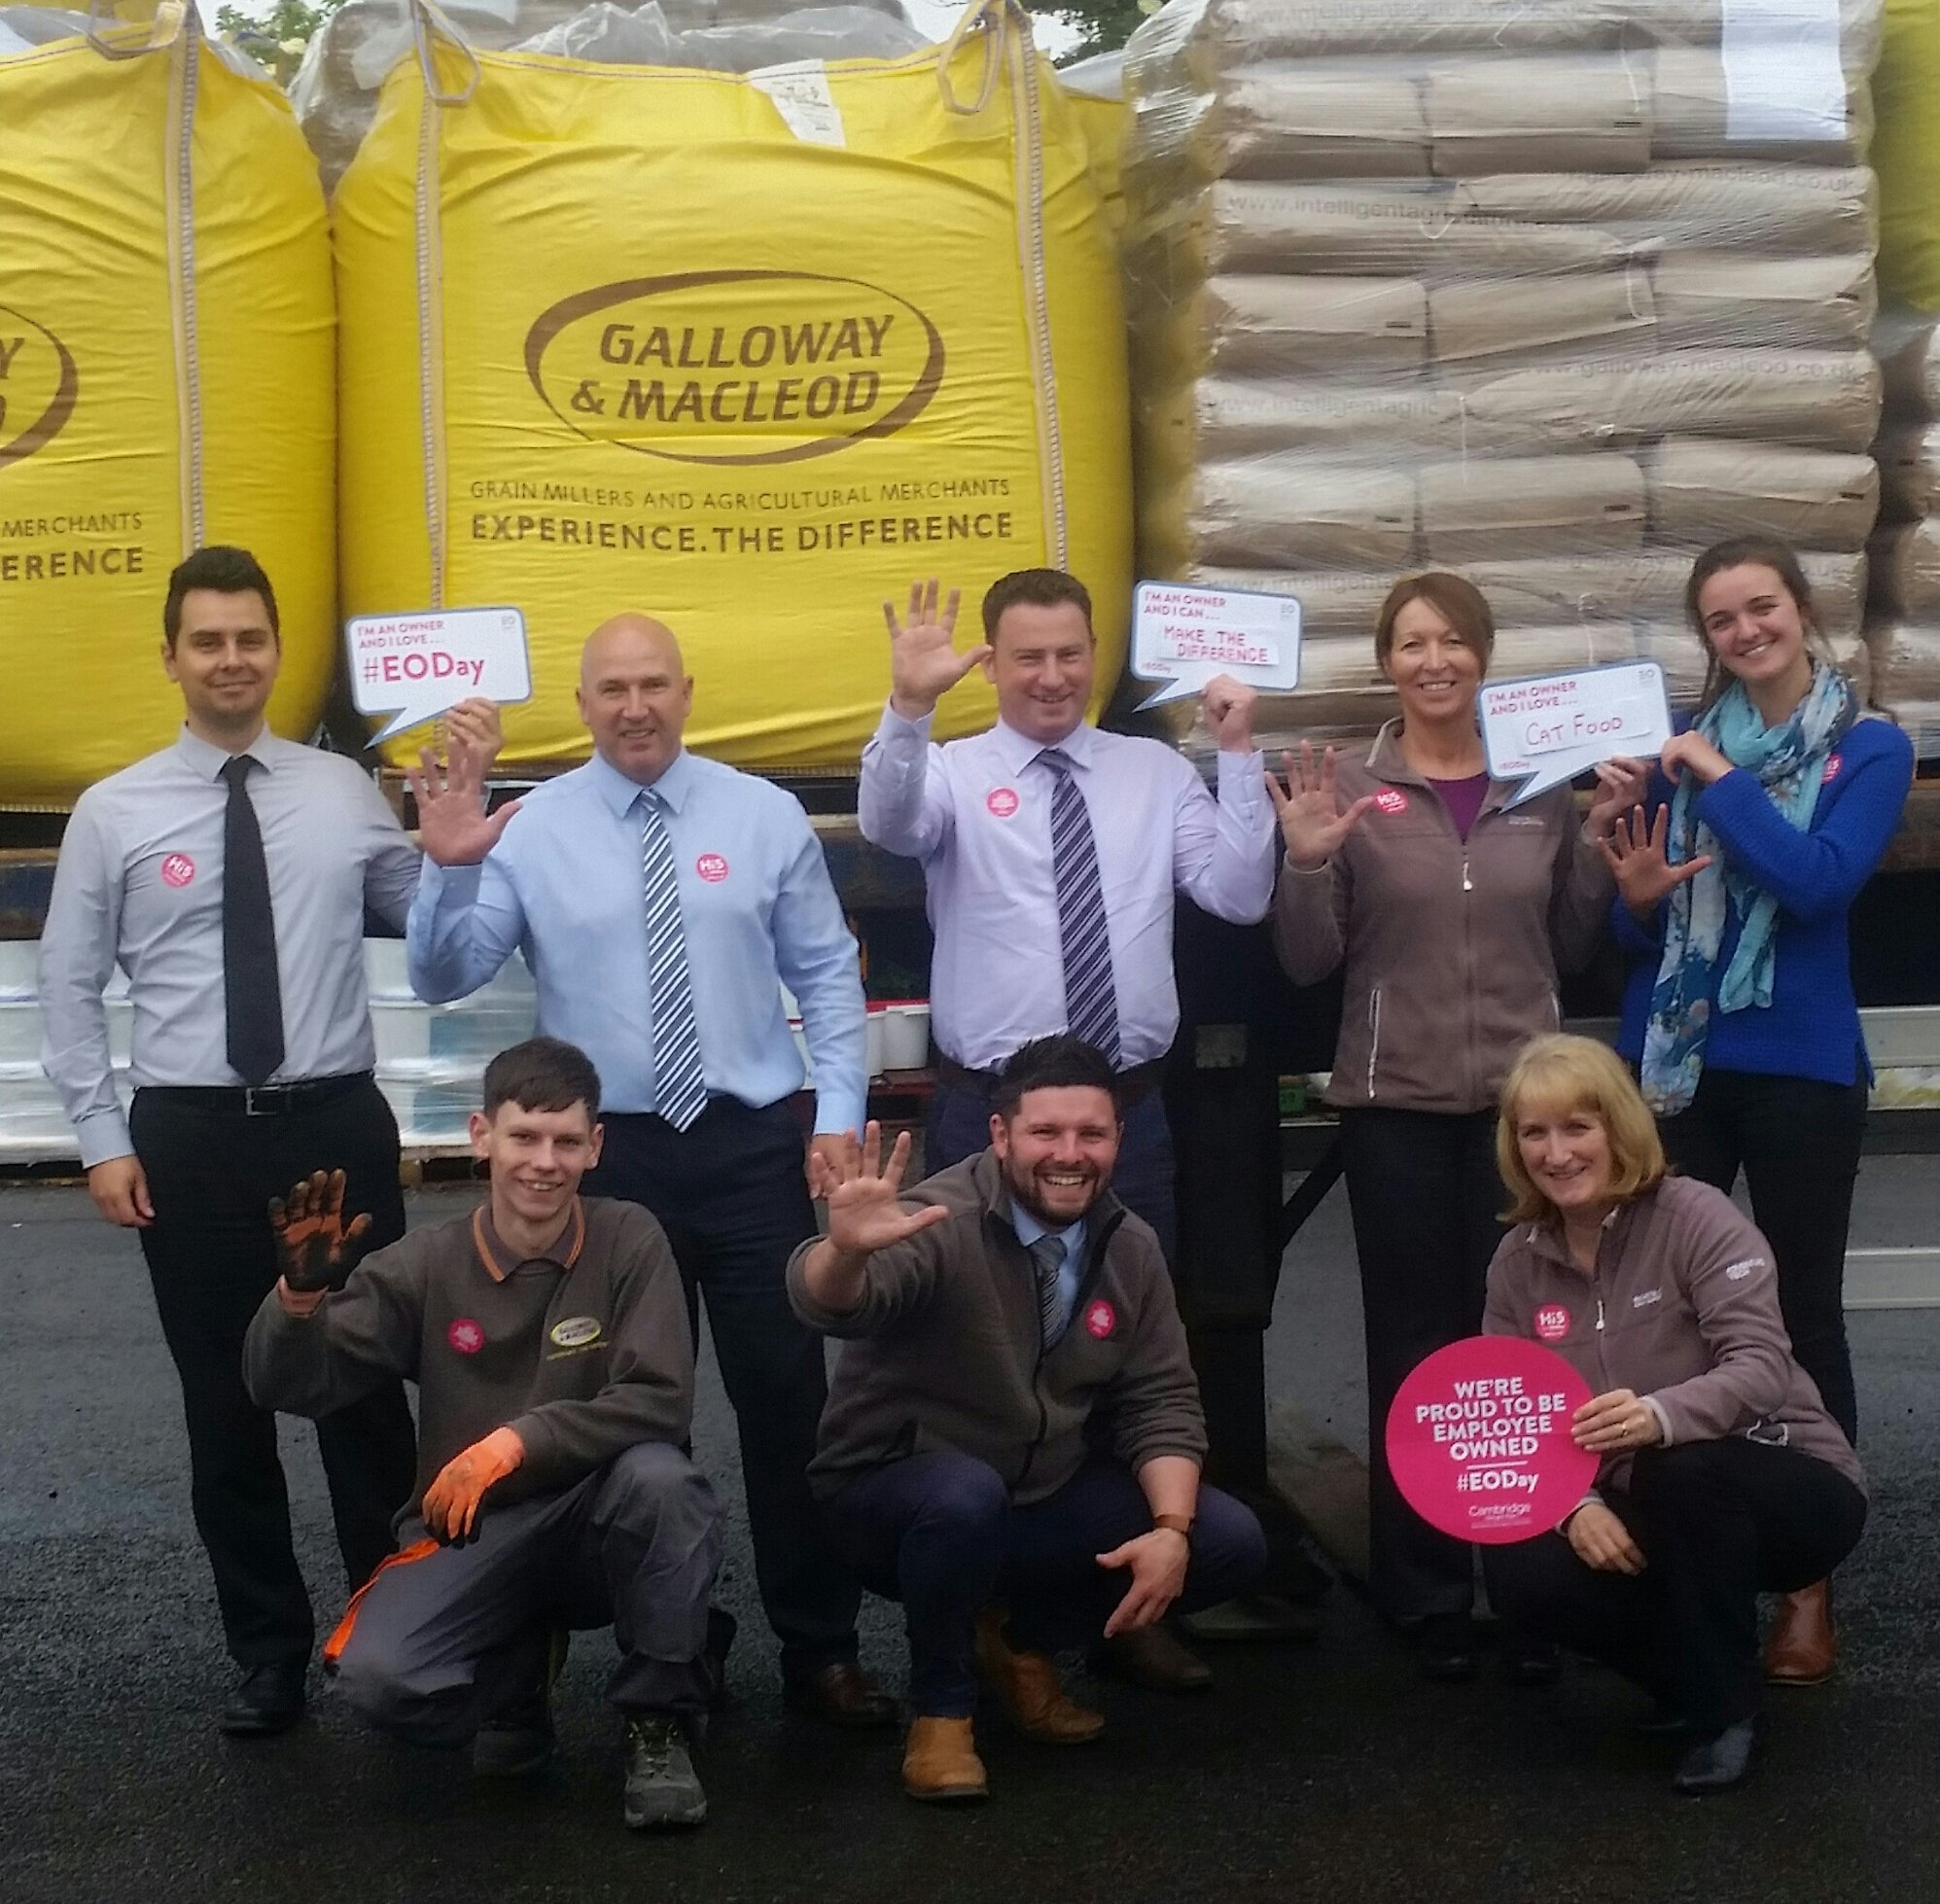 Happy Employee Ownership Day!!!!   Galloway and MacLeod are proud to be #employeeowned   @EmployeeOwned #EODay #Hi5 https://t.co/hPg7ydFB0M